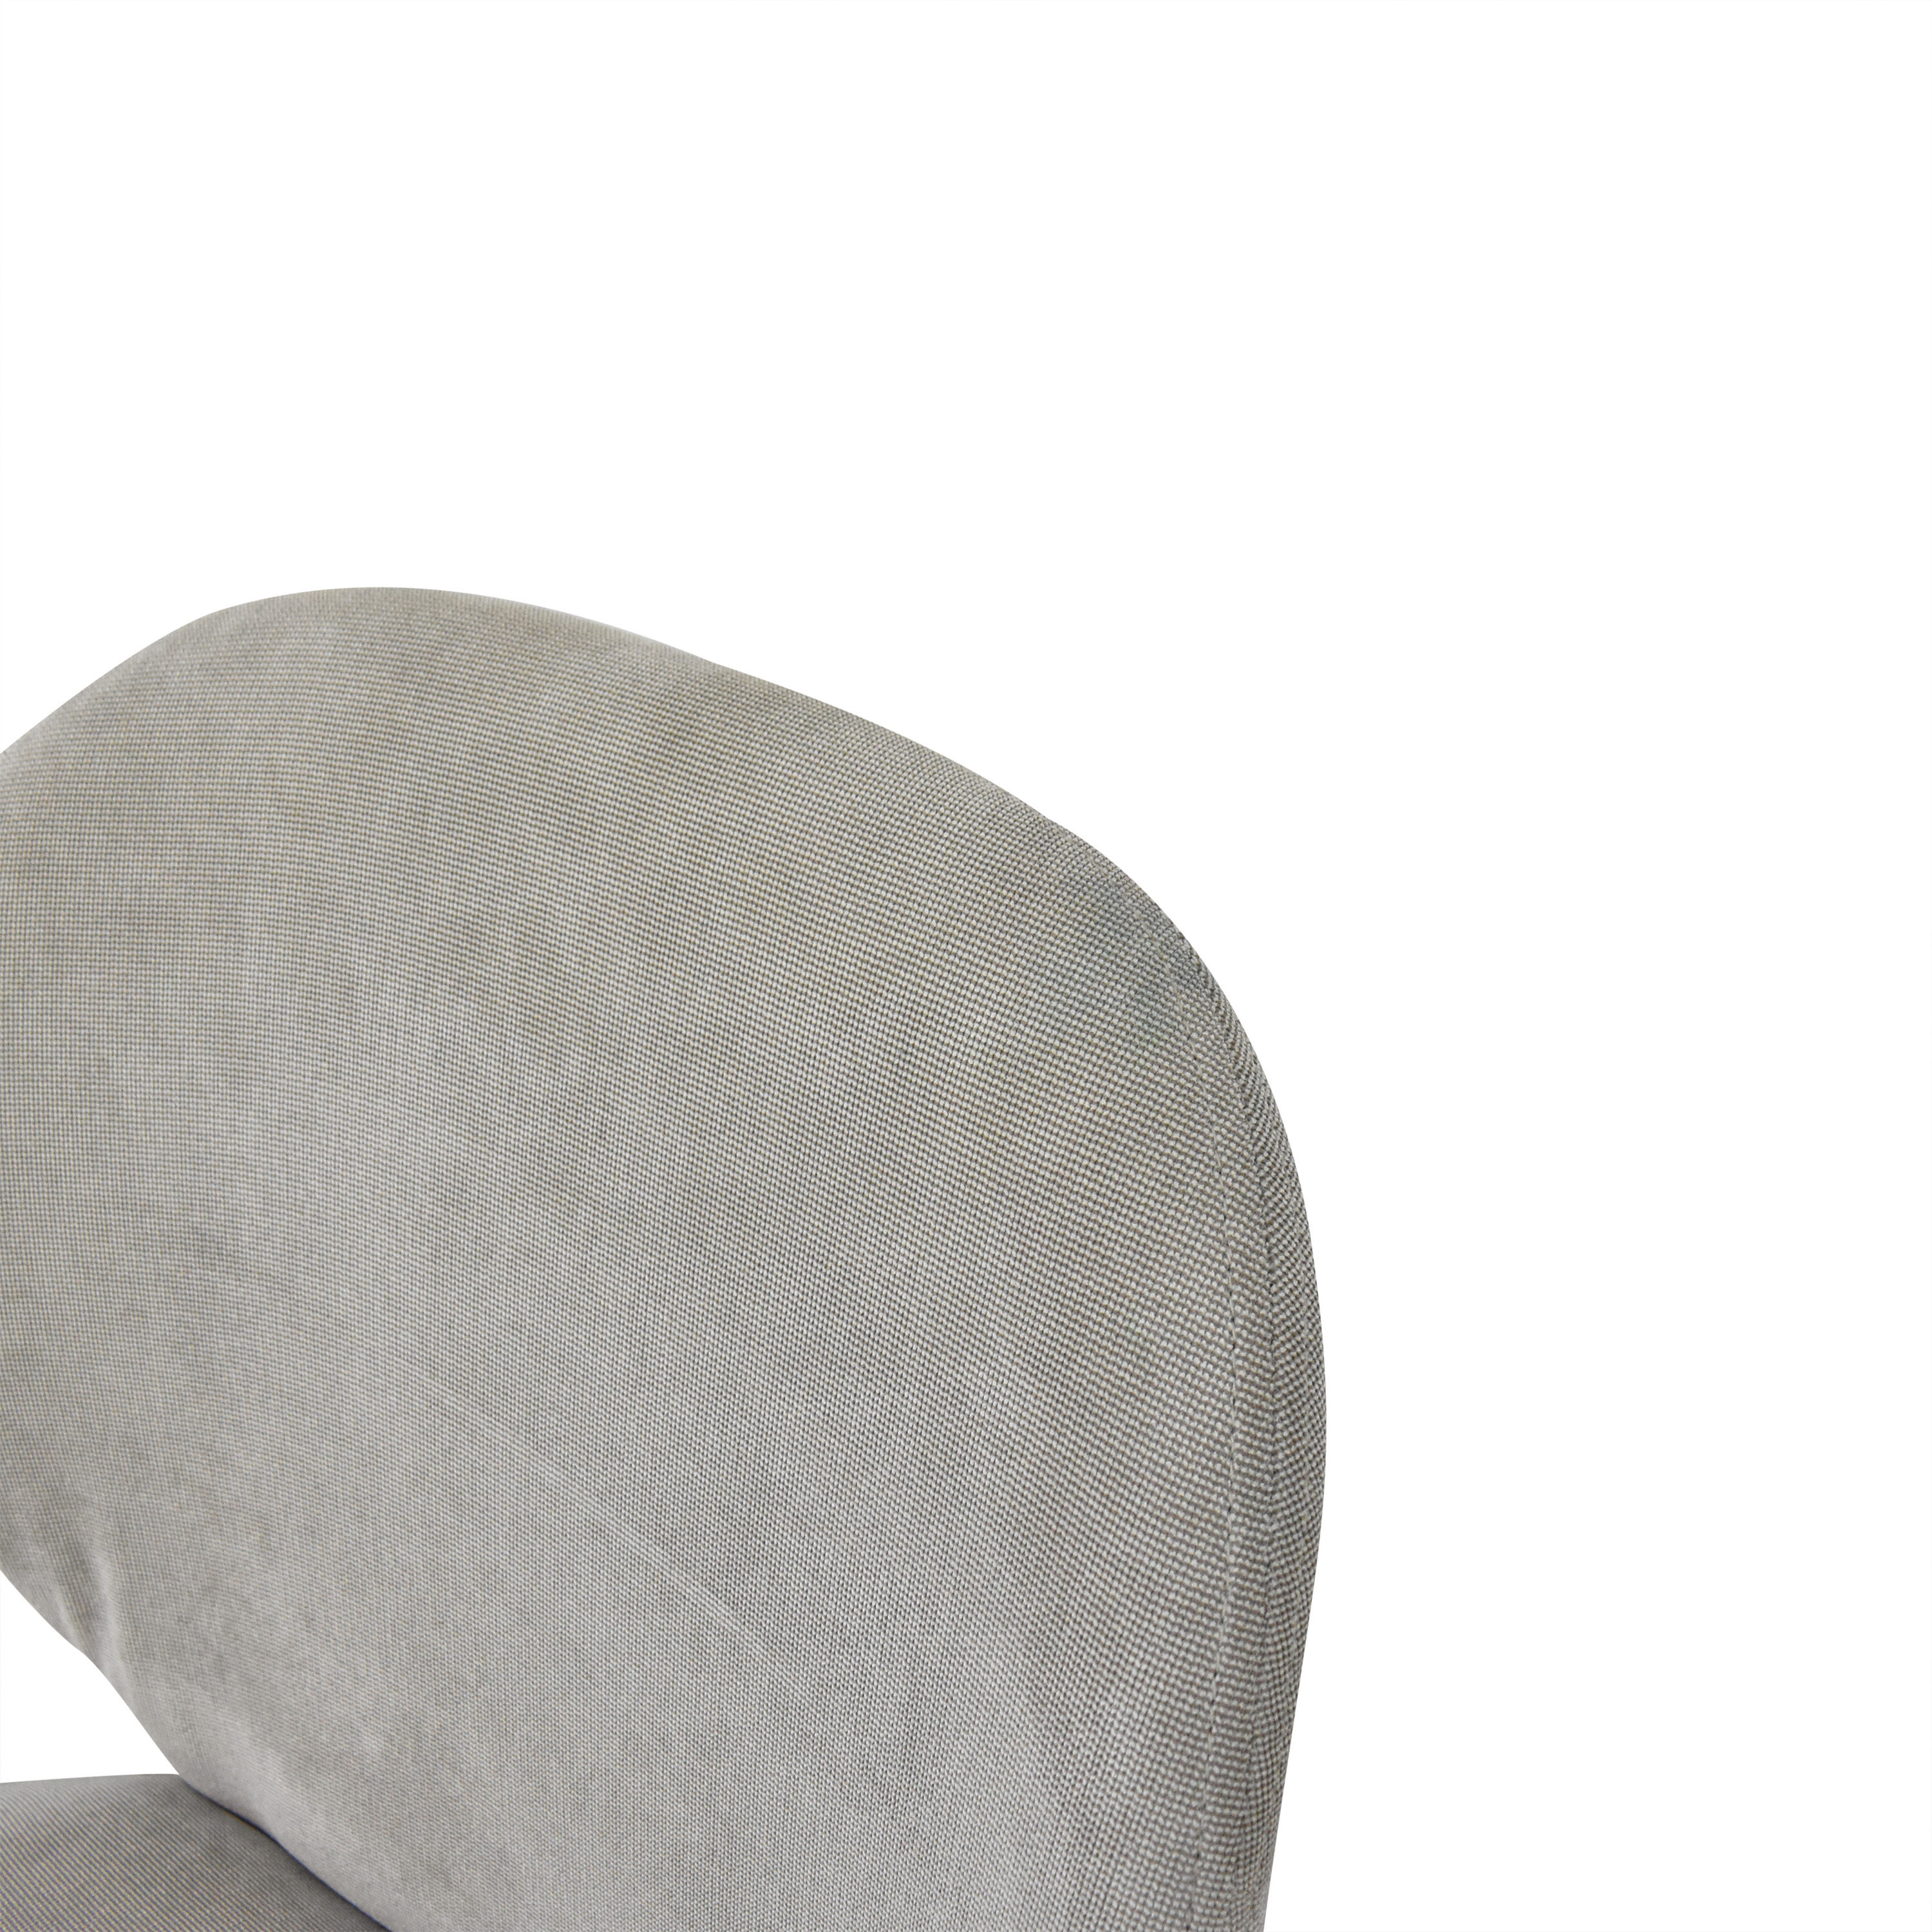 Interior Define Upholstered Dining Chairs / Dining Chairs